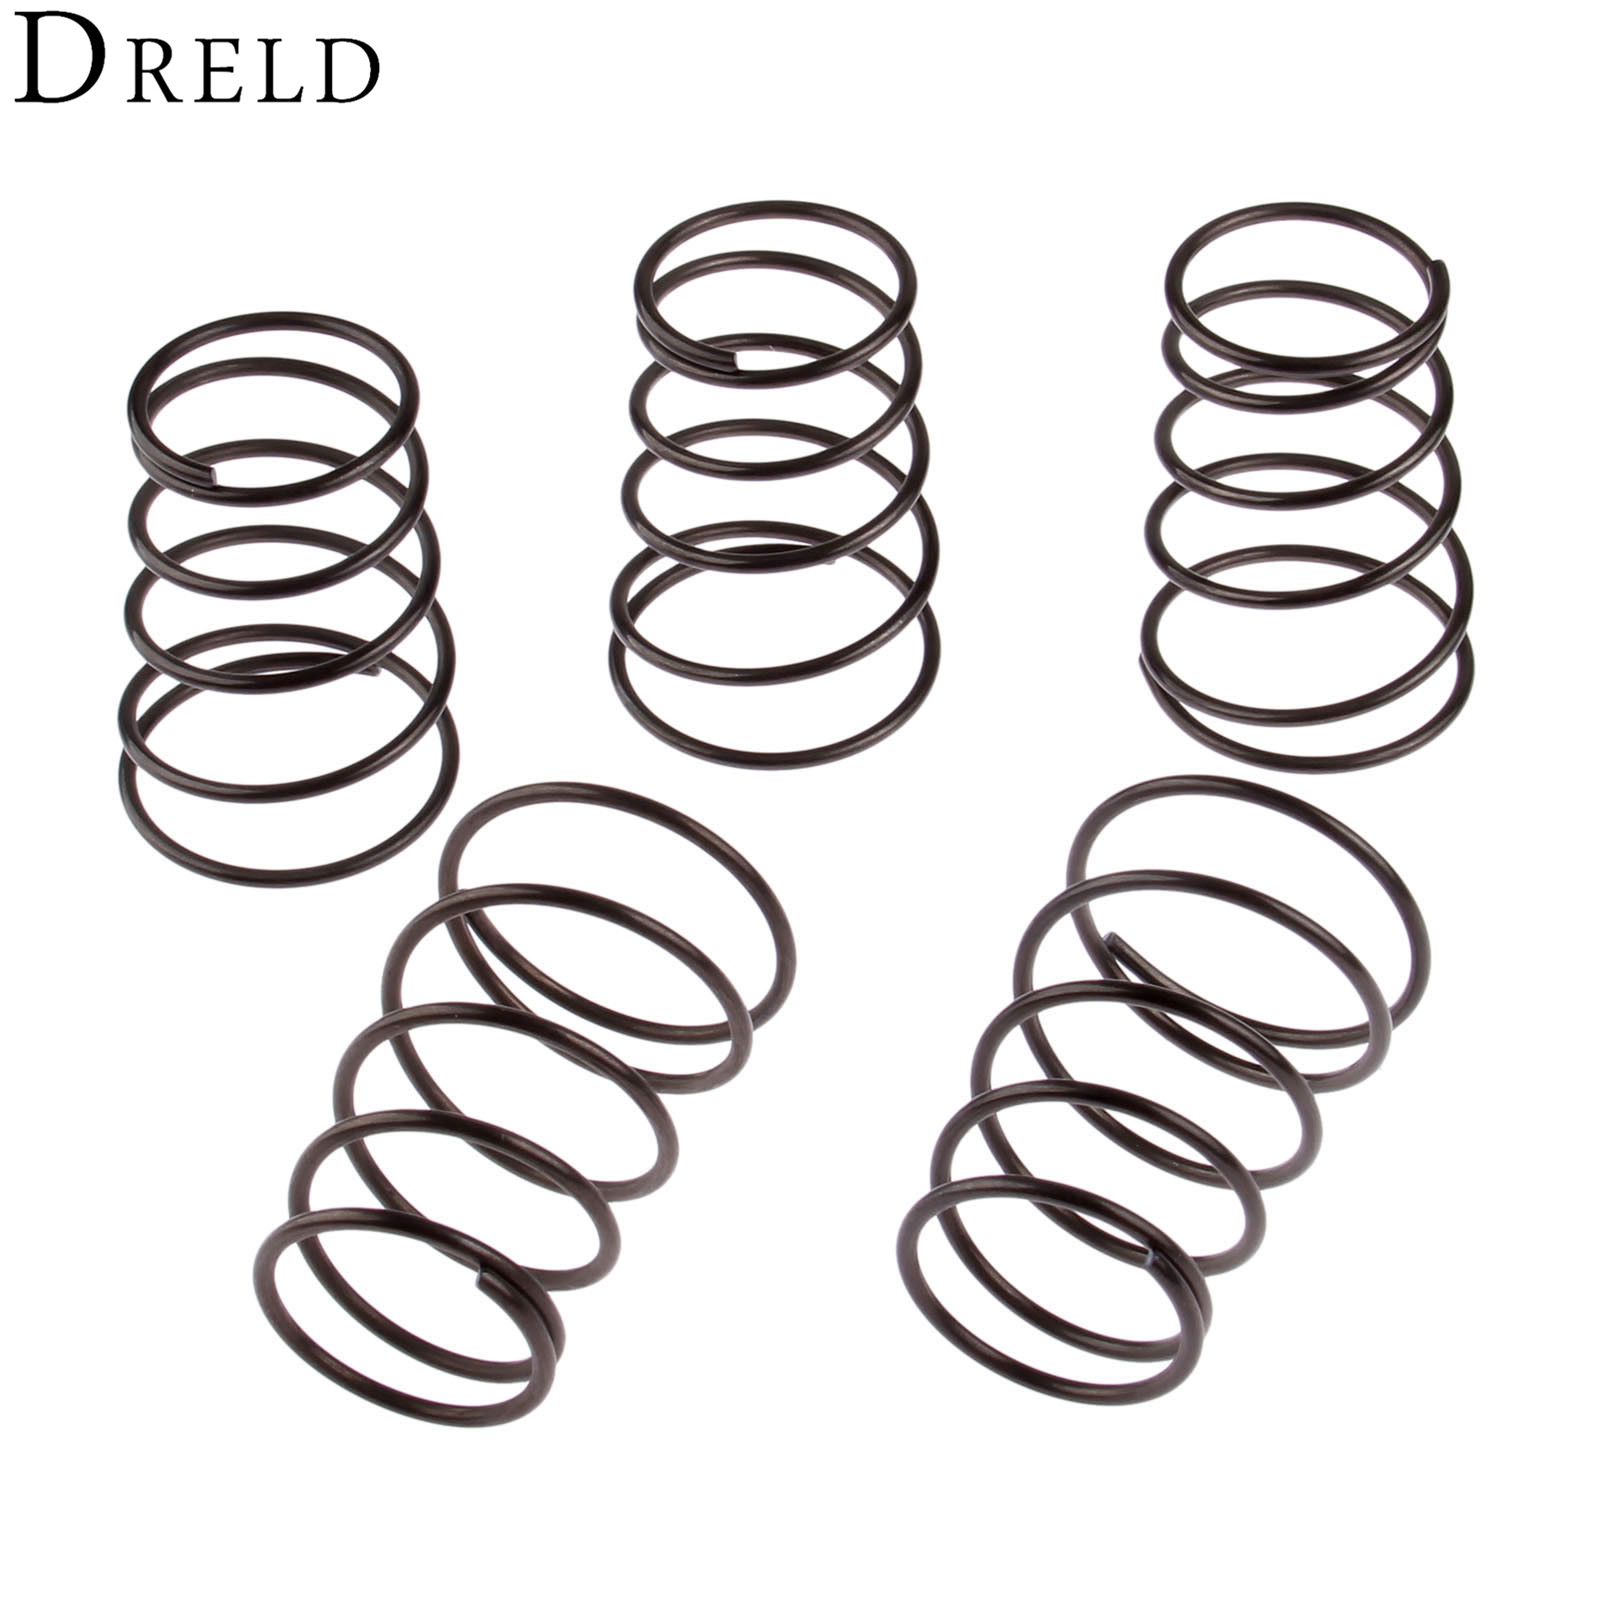 DRELD 5Pcs Universal Nylon Trimmer Head Spring Garden Lawn Mower Tool Parts Bump Spring Steel for Garden Tools Parts Replacement dreld 125 80mm nylon bump feed line grass trimmer strimmer head garden accessories supplies for lawn mower garden tool parts